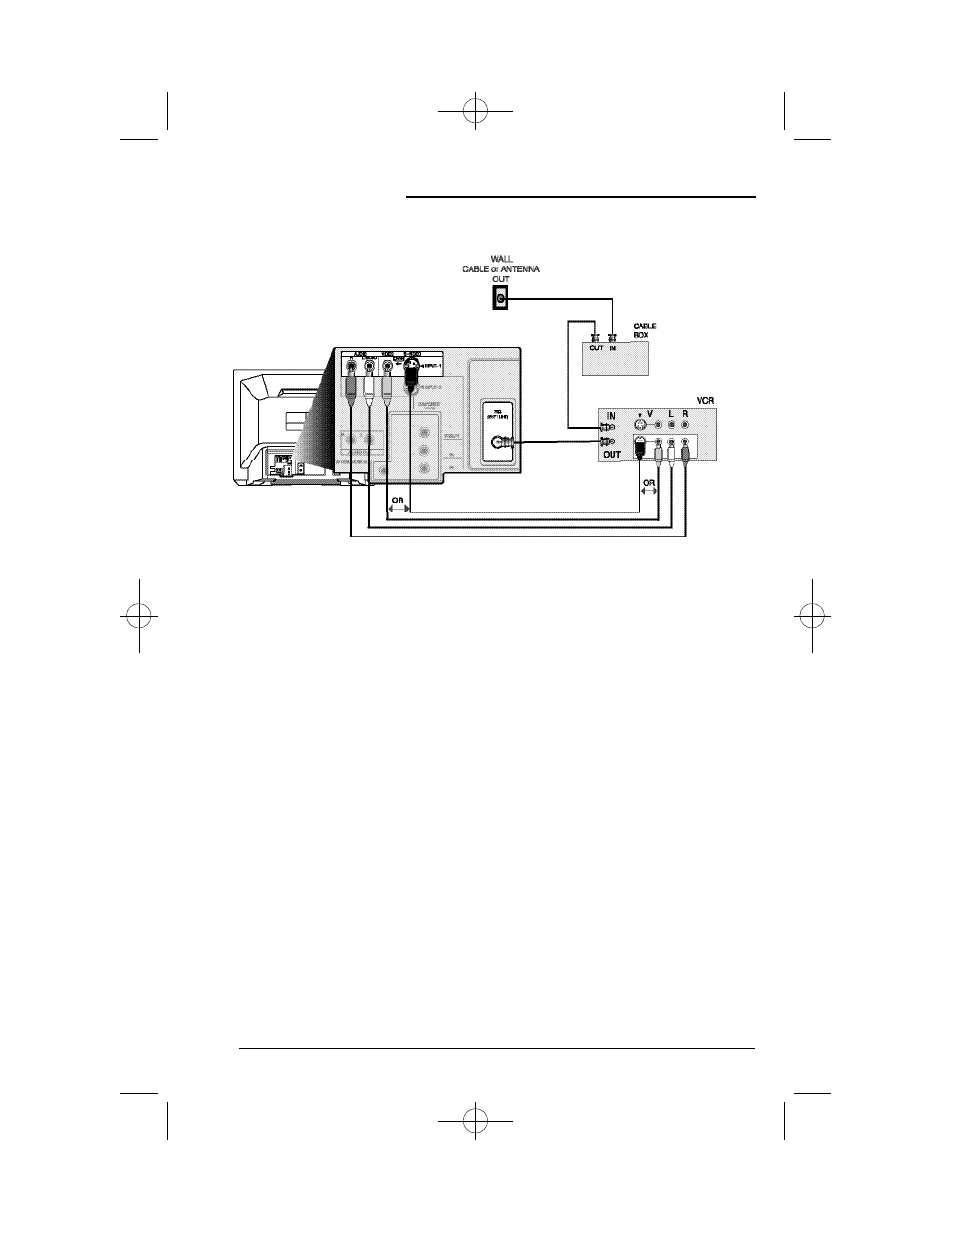 Connections, Cable and vcr connections - continued | JVC AV 36D302 ...